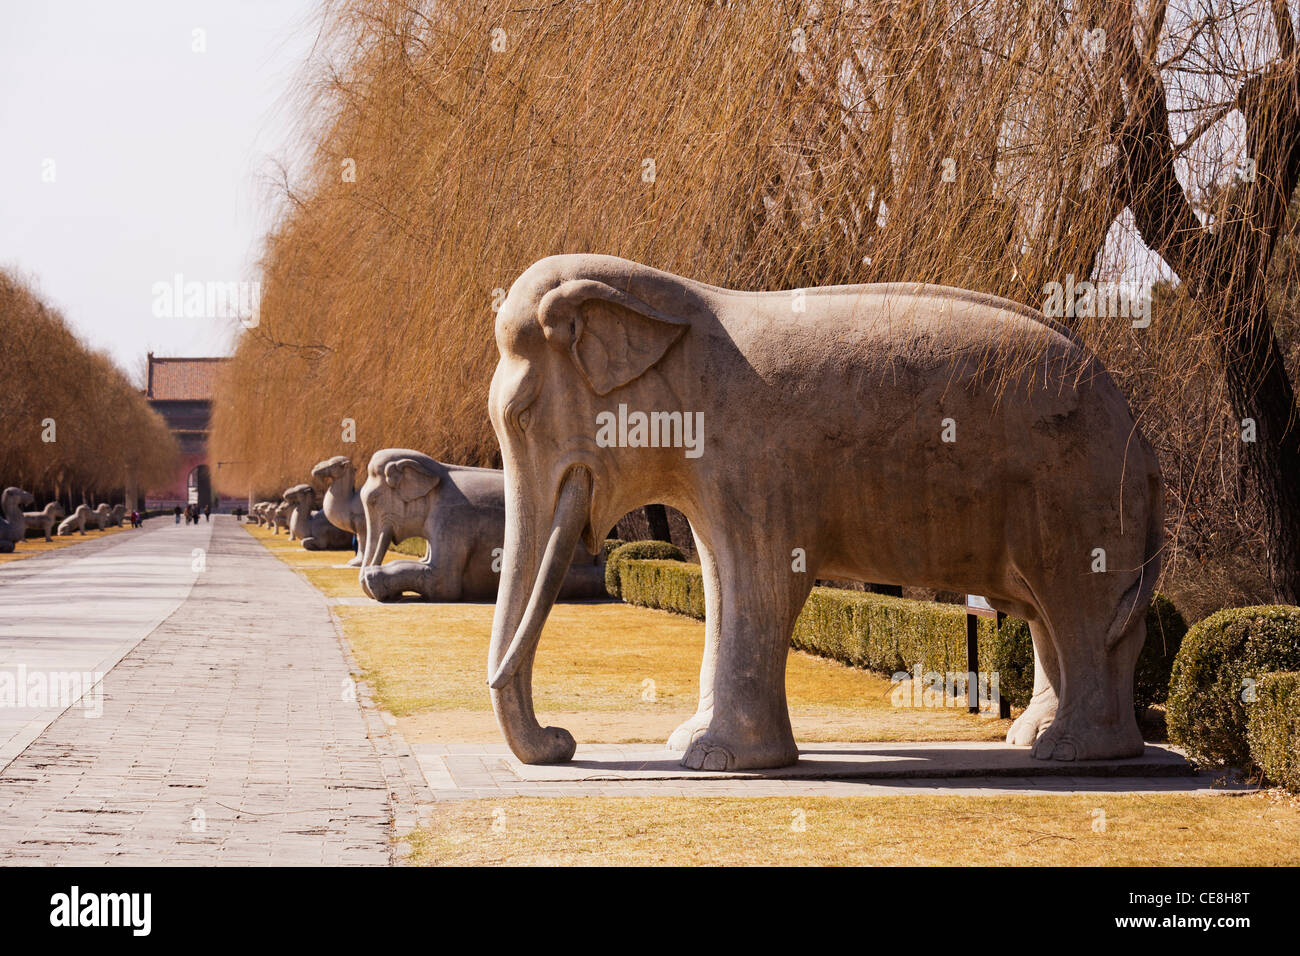 Sculptures on the Sacred or Spirit Way leading to the Ming Tombs outside Beijing, China. - Stock Image